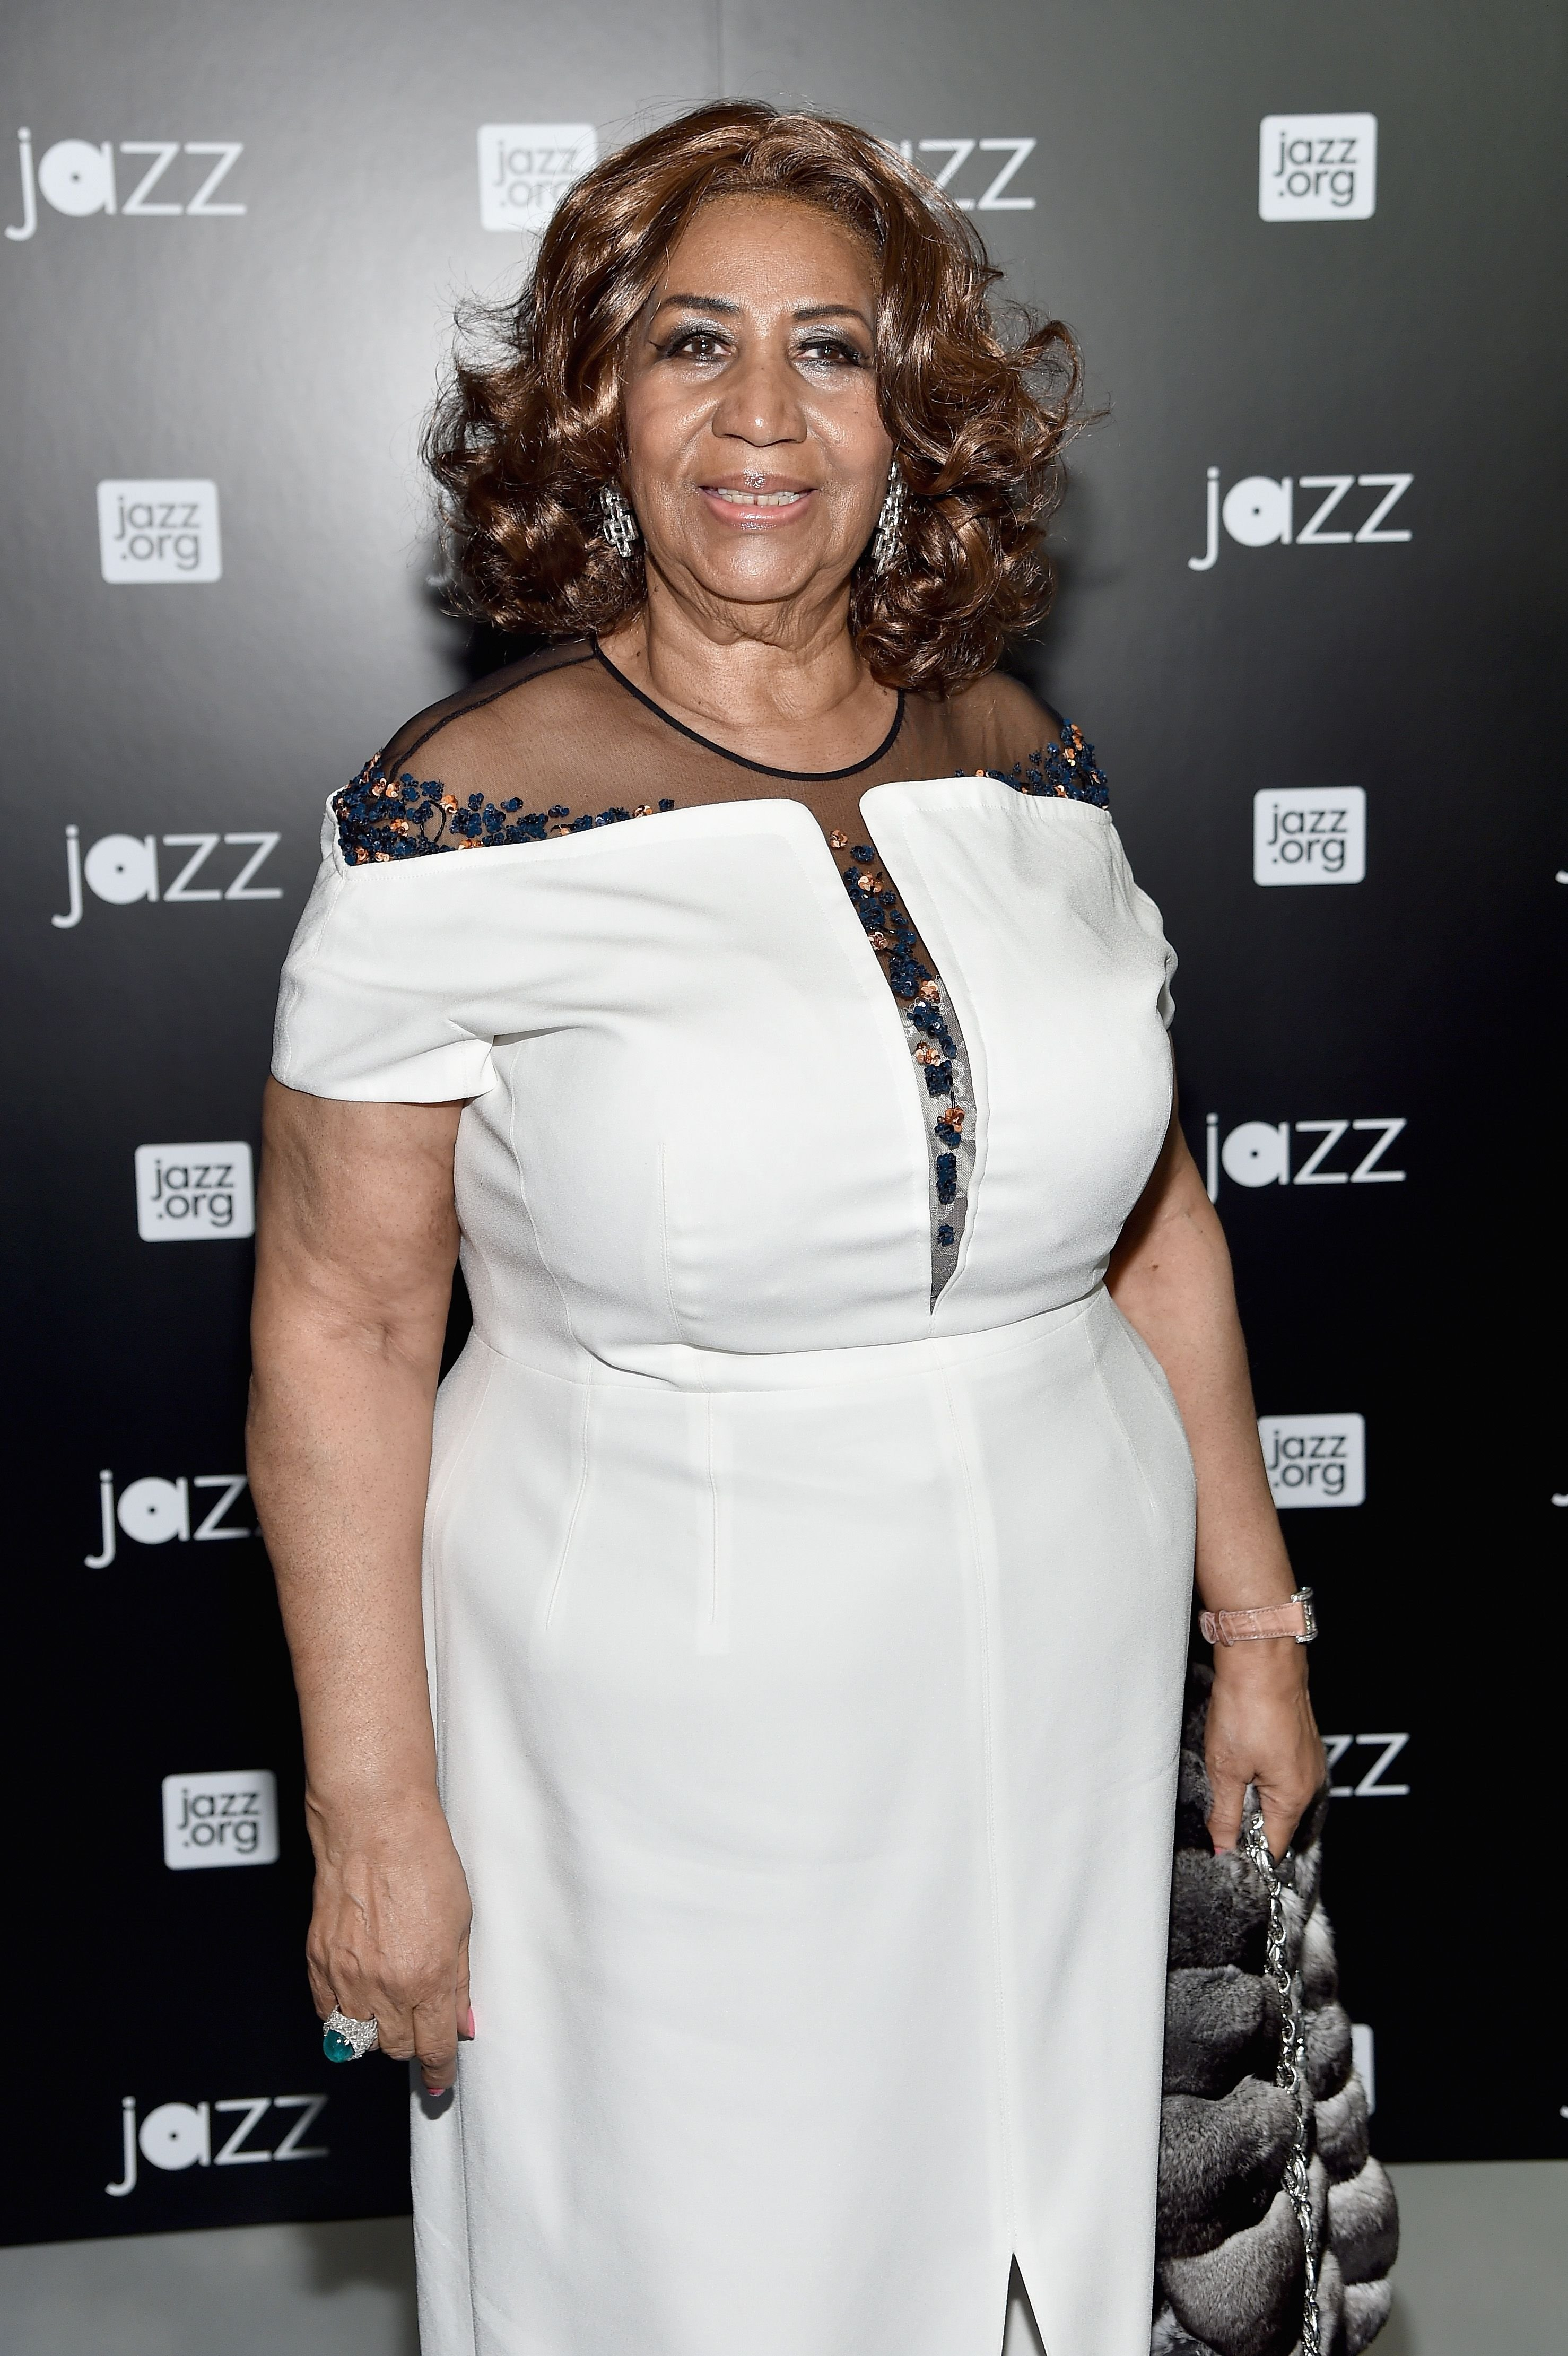 Late musician Aretha Franklin at the opening of the Mica and Ahmet Ertegun Atrium at Jazz at Lincoln Center on December 17, 2015 | Photo | Getty Images